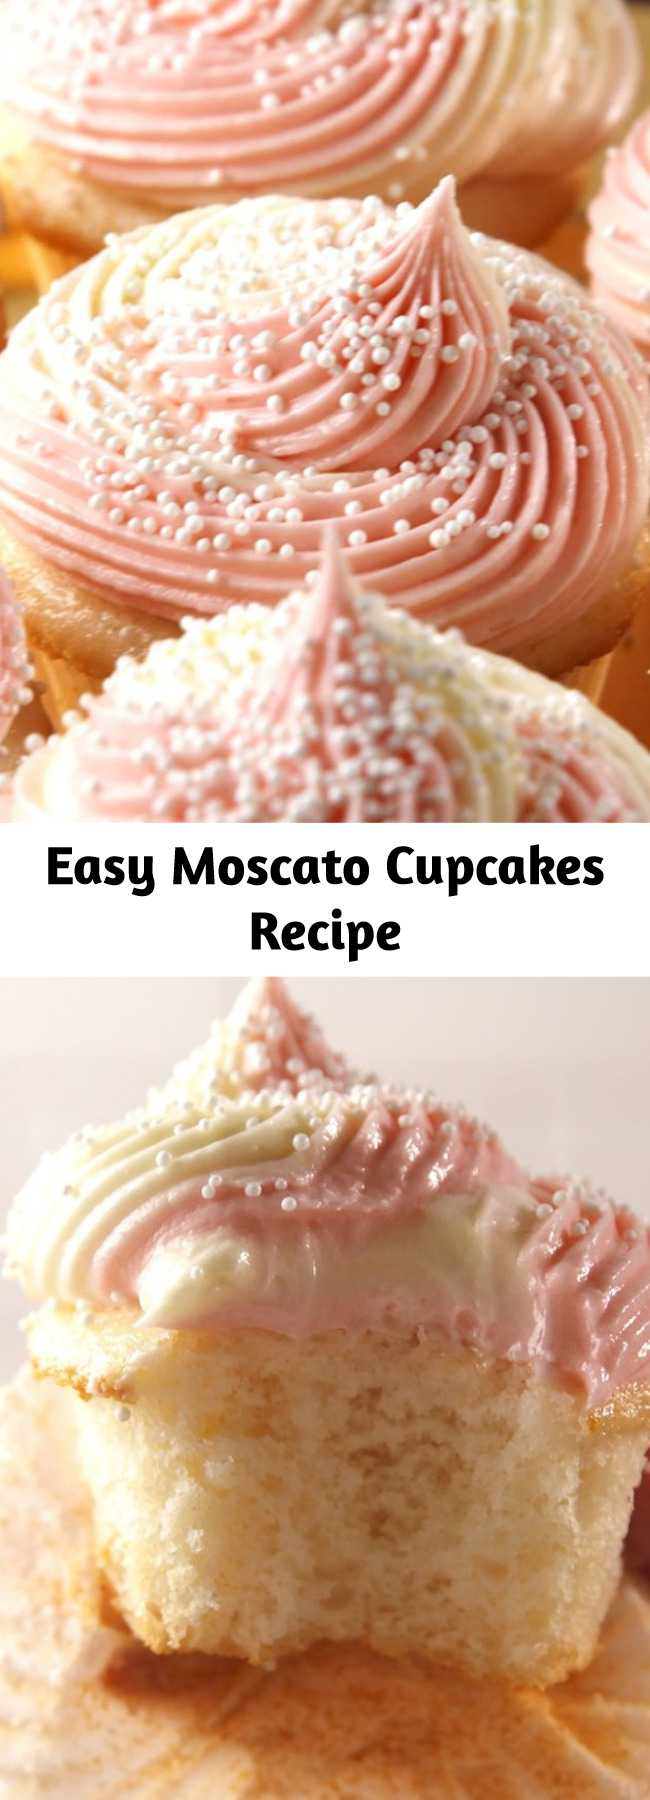 Easy Moscato Cupcakes Recipe - Screw shots — throw a few of these Moscato Cupcakes back this weekend. Cheers!